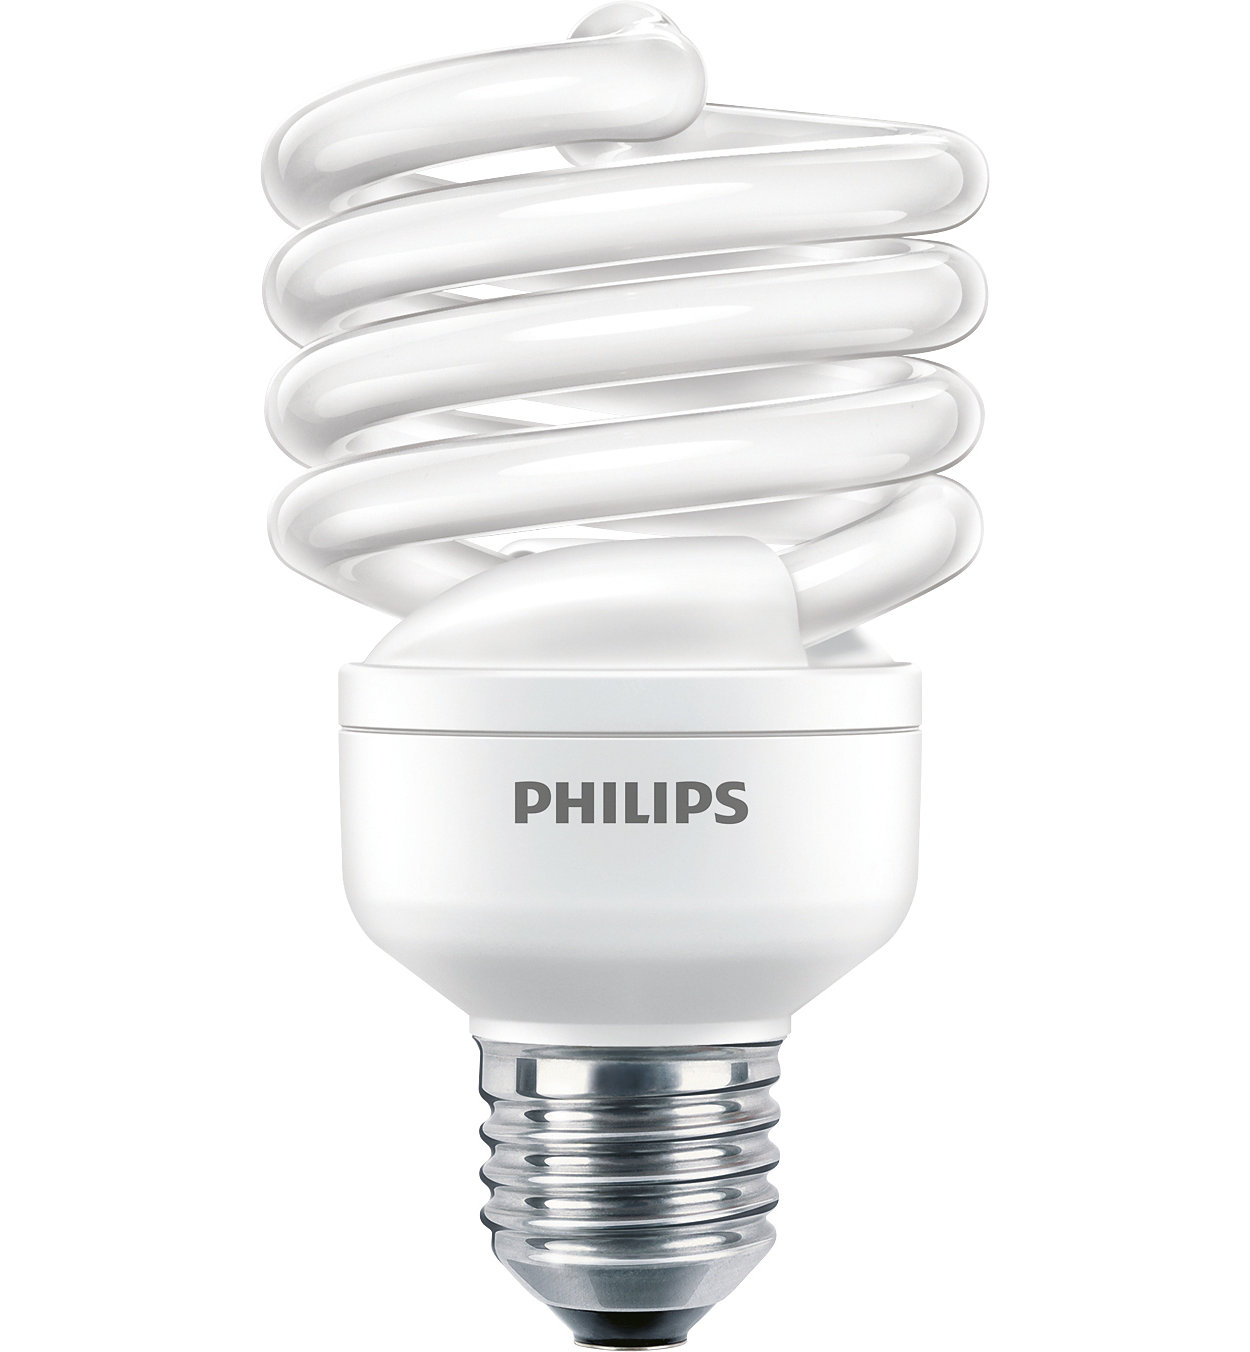 Philips Economy Twister Twisted energy saving bulb 871829121715200 - Fluorescent Bulbs (23 W, 100 W, Twistline, E27, 1390 lm, Cool daylight) - PHL TORN23CDL